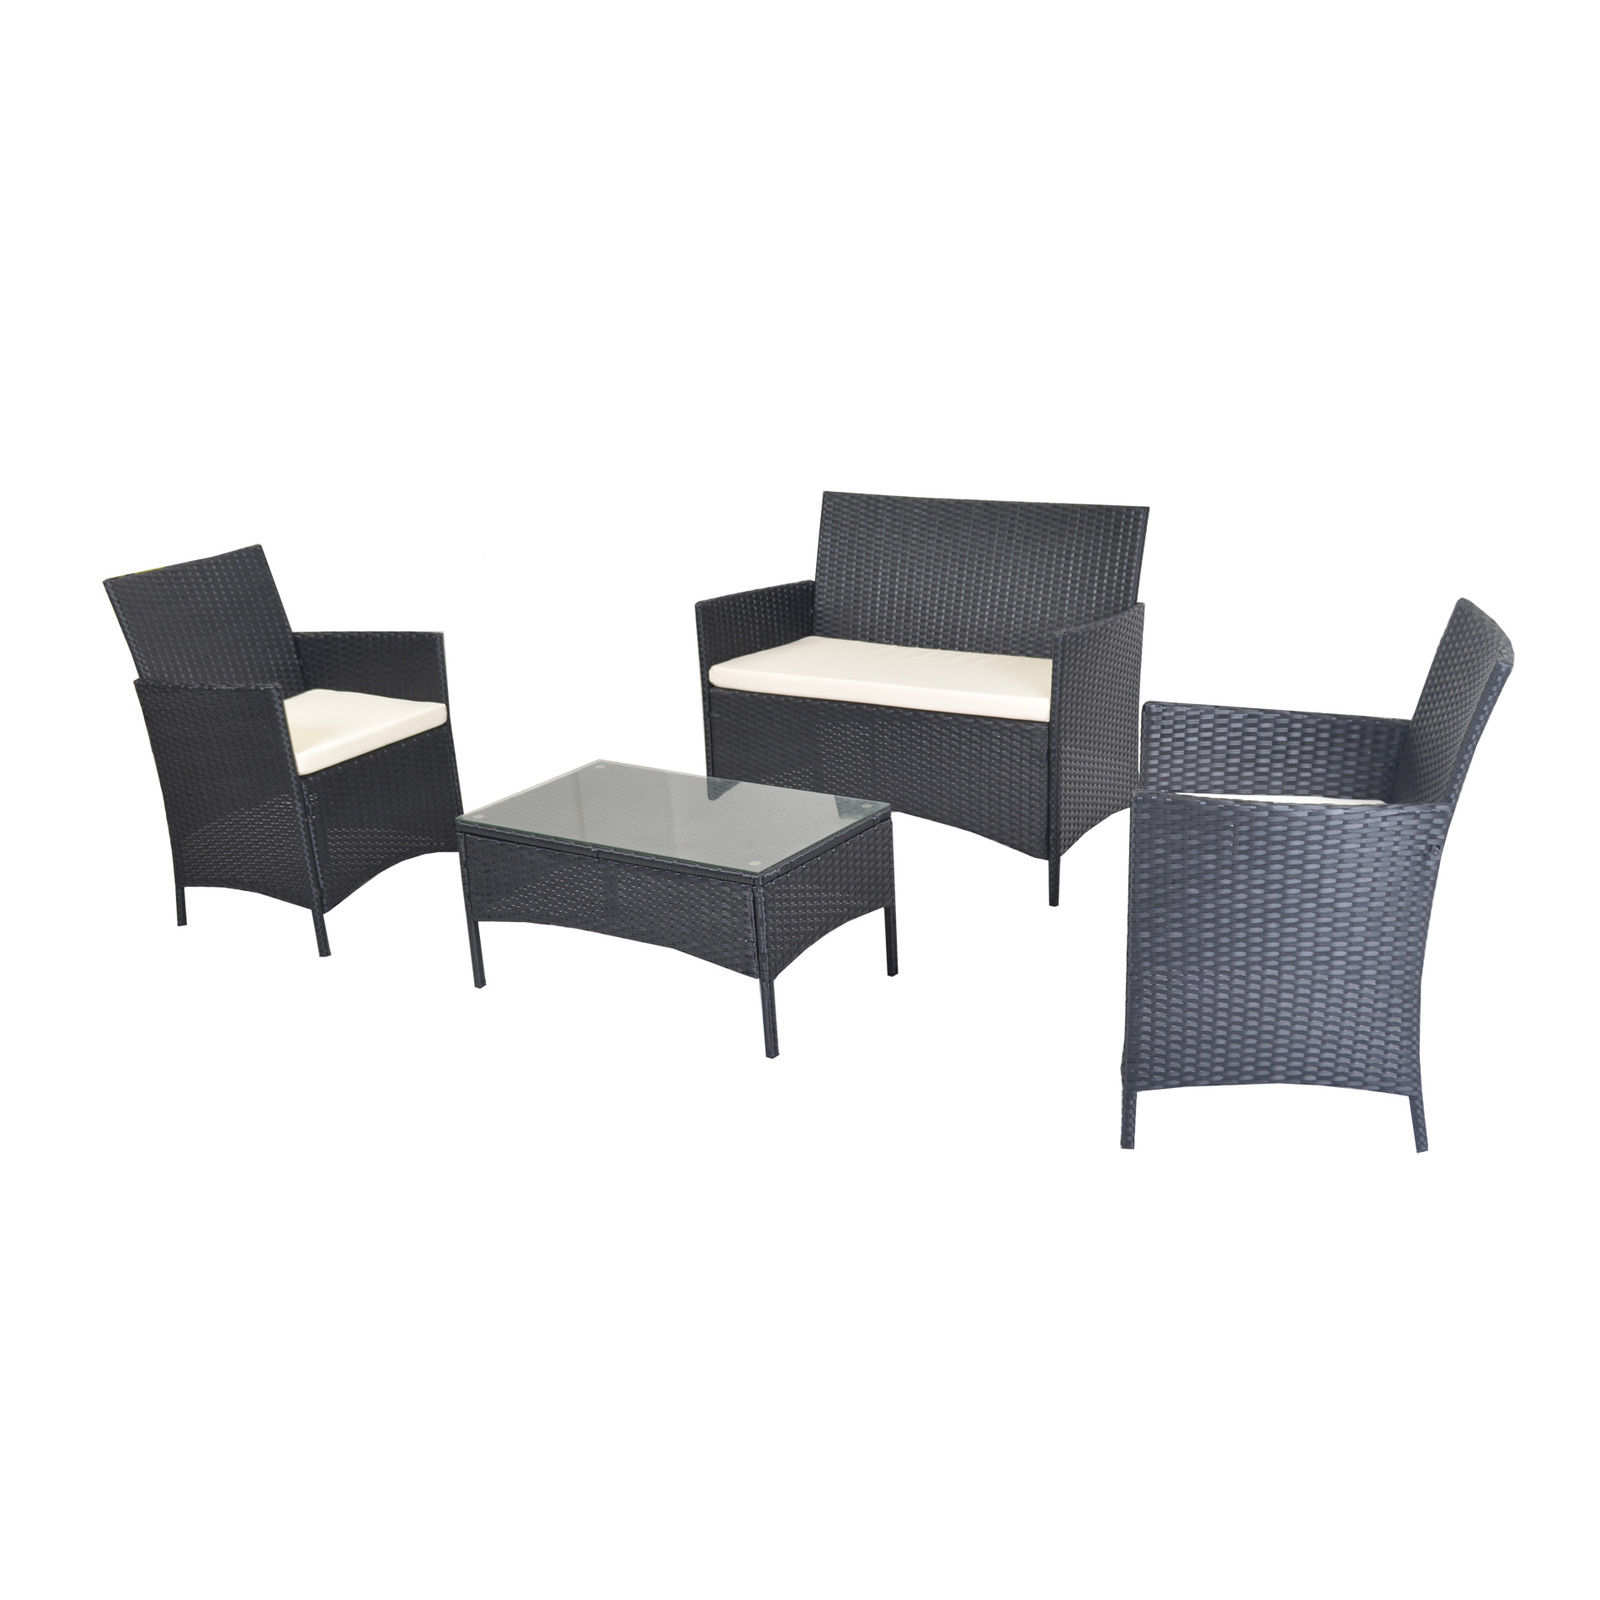 Premium Rattan Furniture Set 4 Piece Chairs Sofa Table